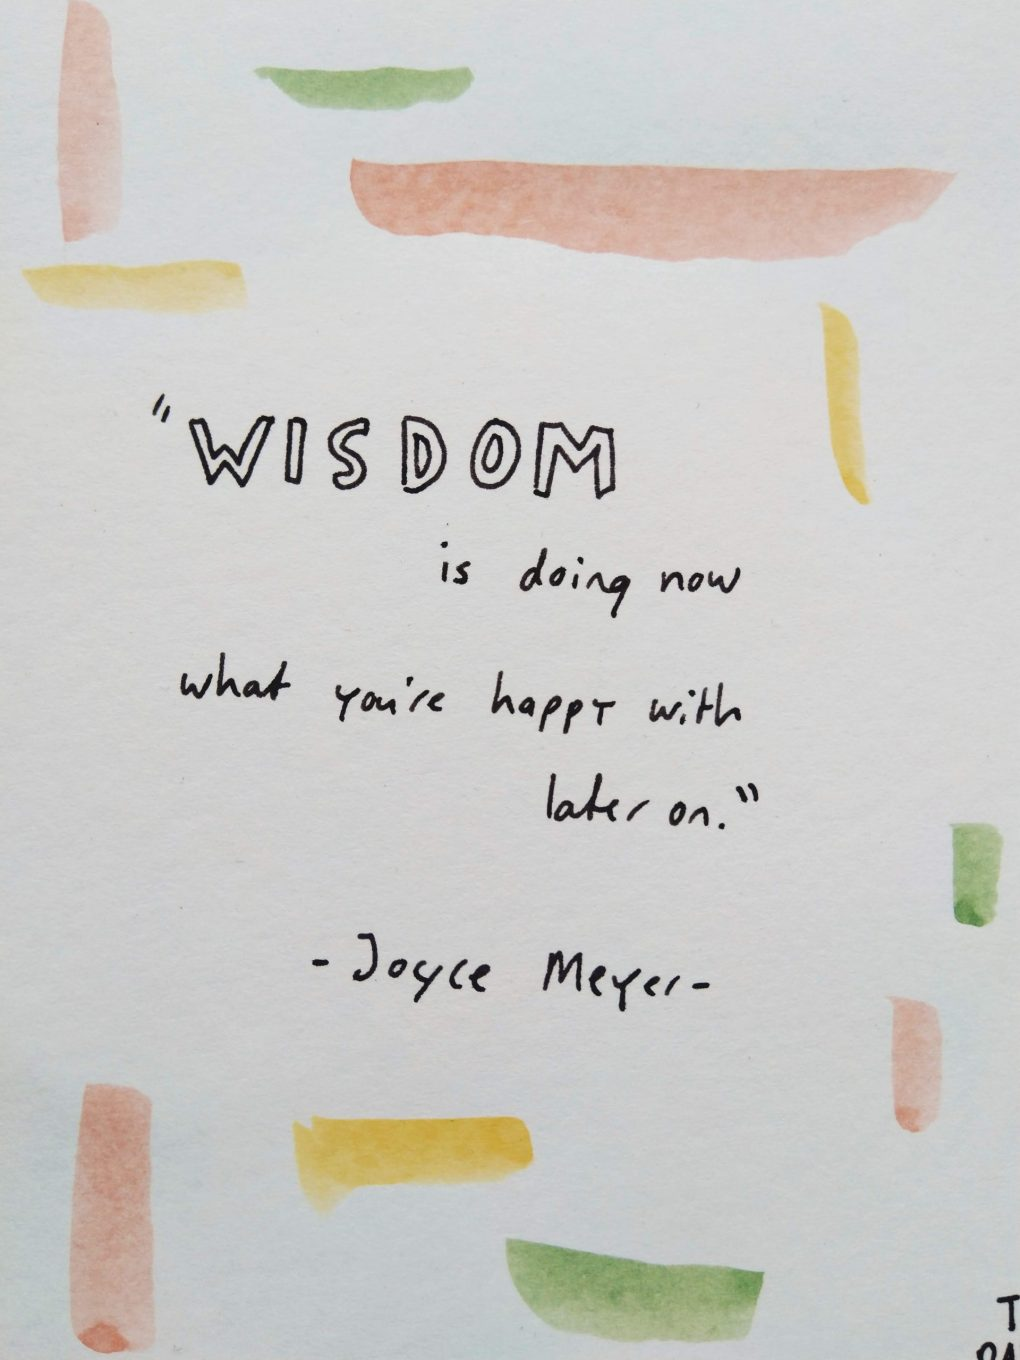 wisdom is doing now what you're happy with later on joyce meyer quote